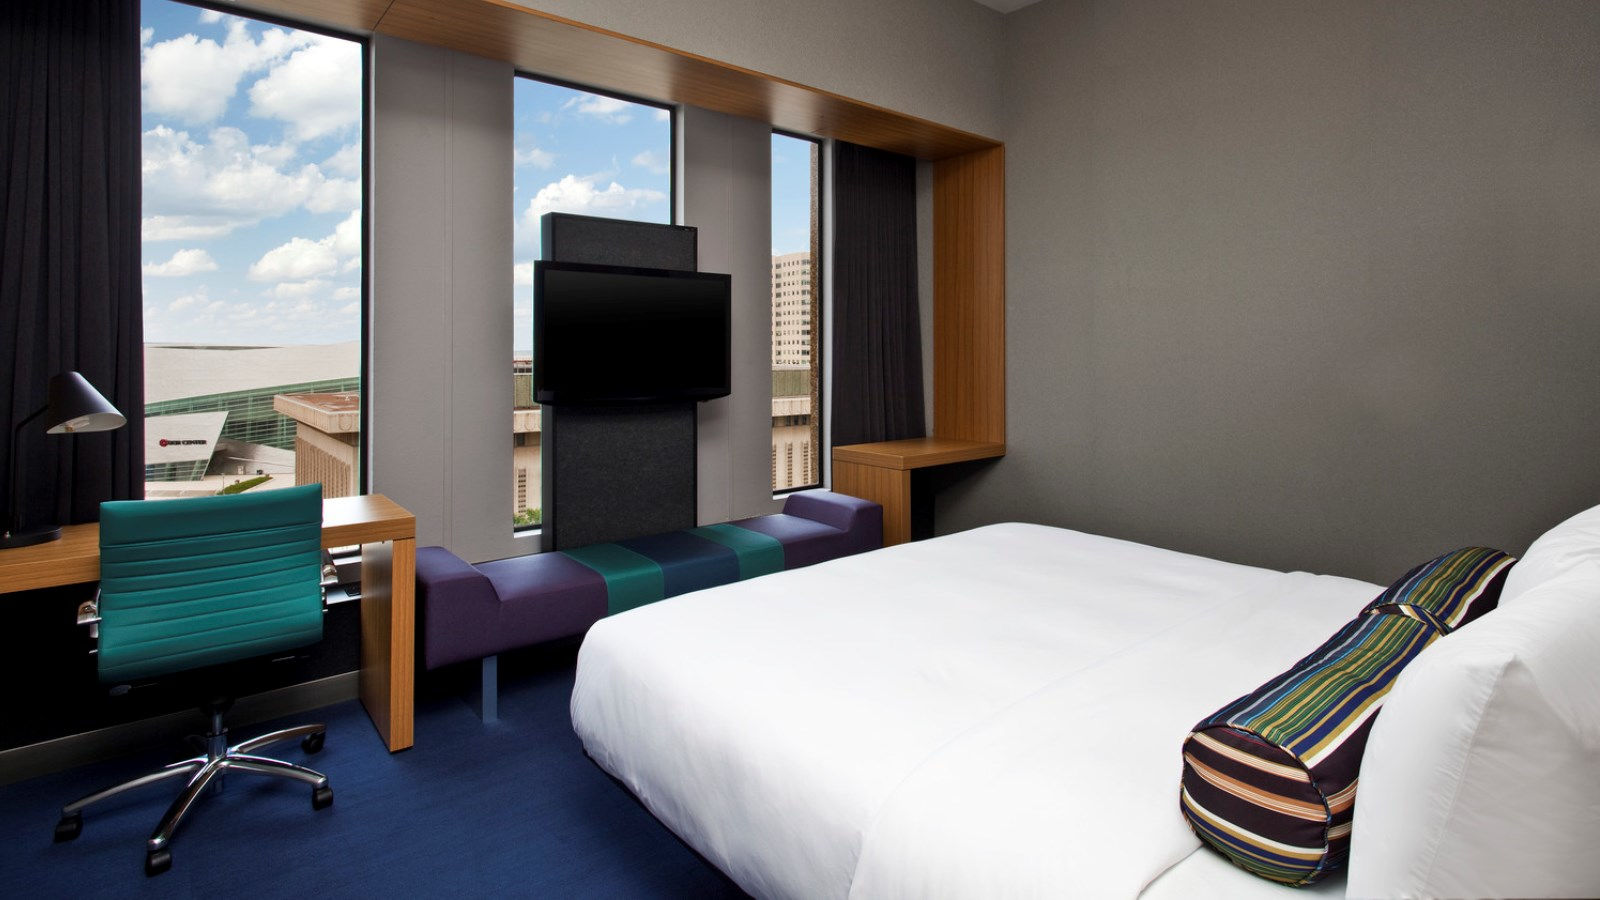 Tulsa Accommodations - Aloft King Room